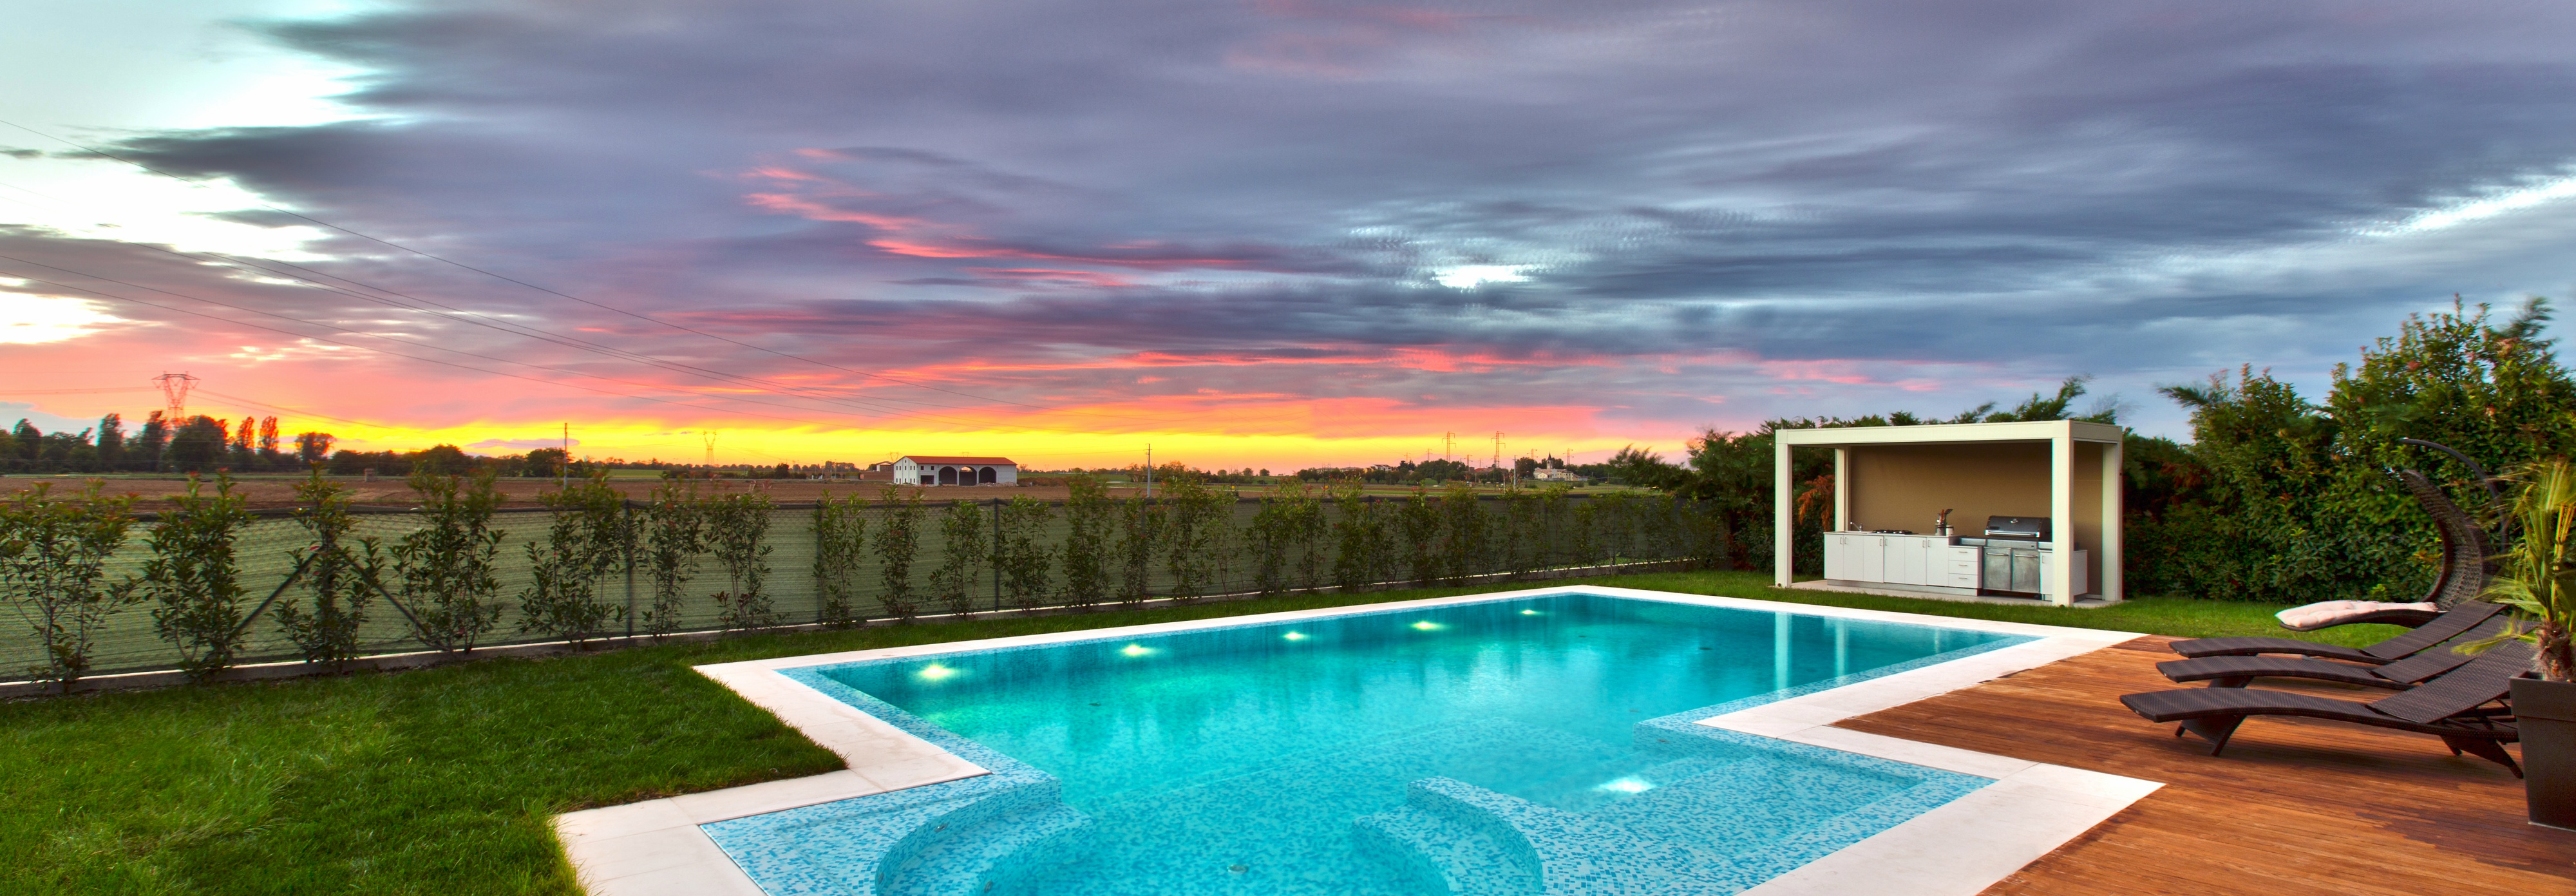 Italian pool design italian pool technology for Swimming pool design xls